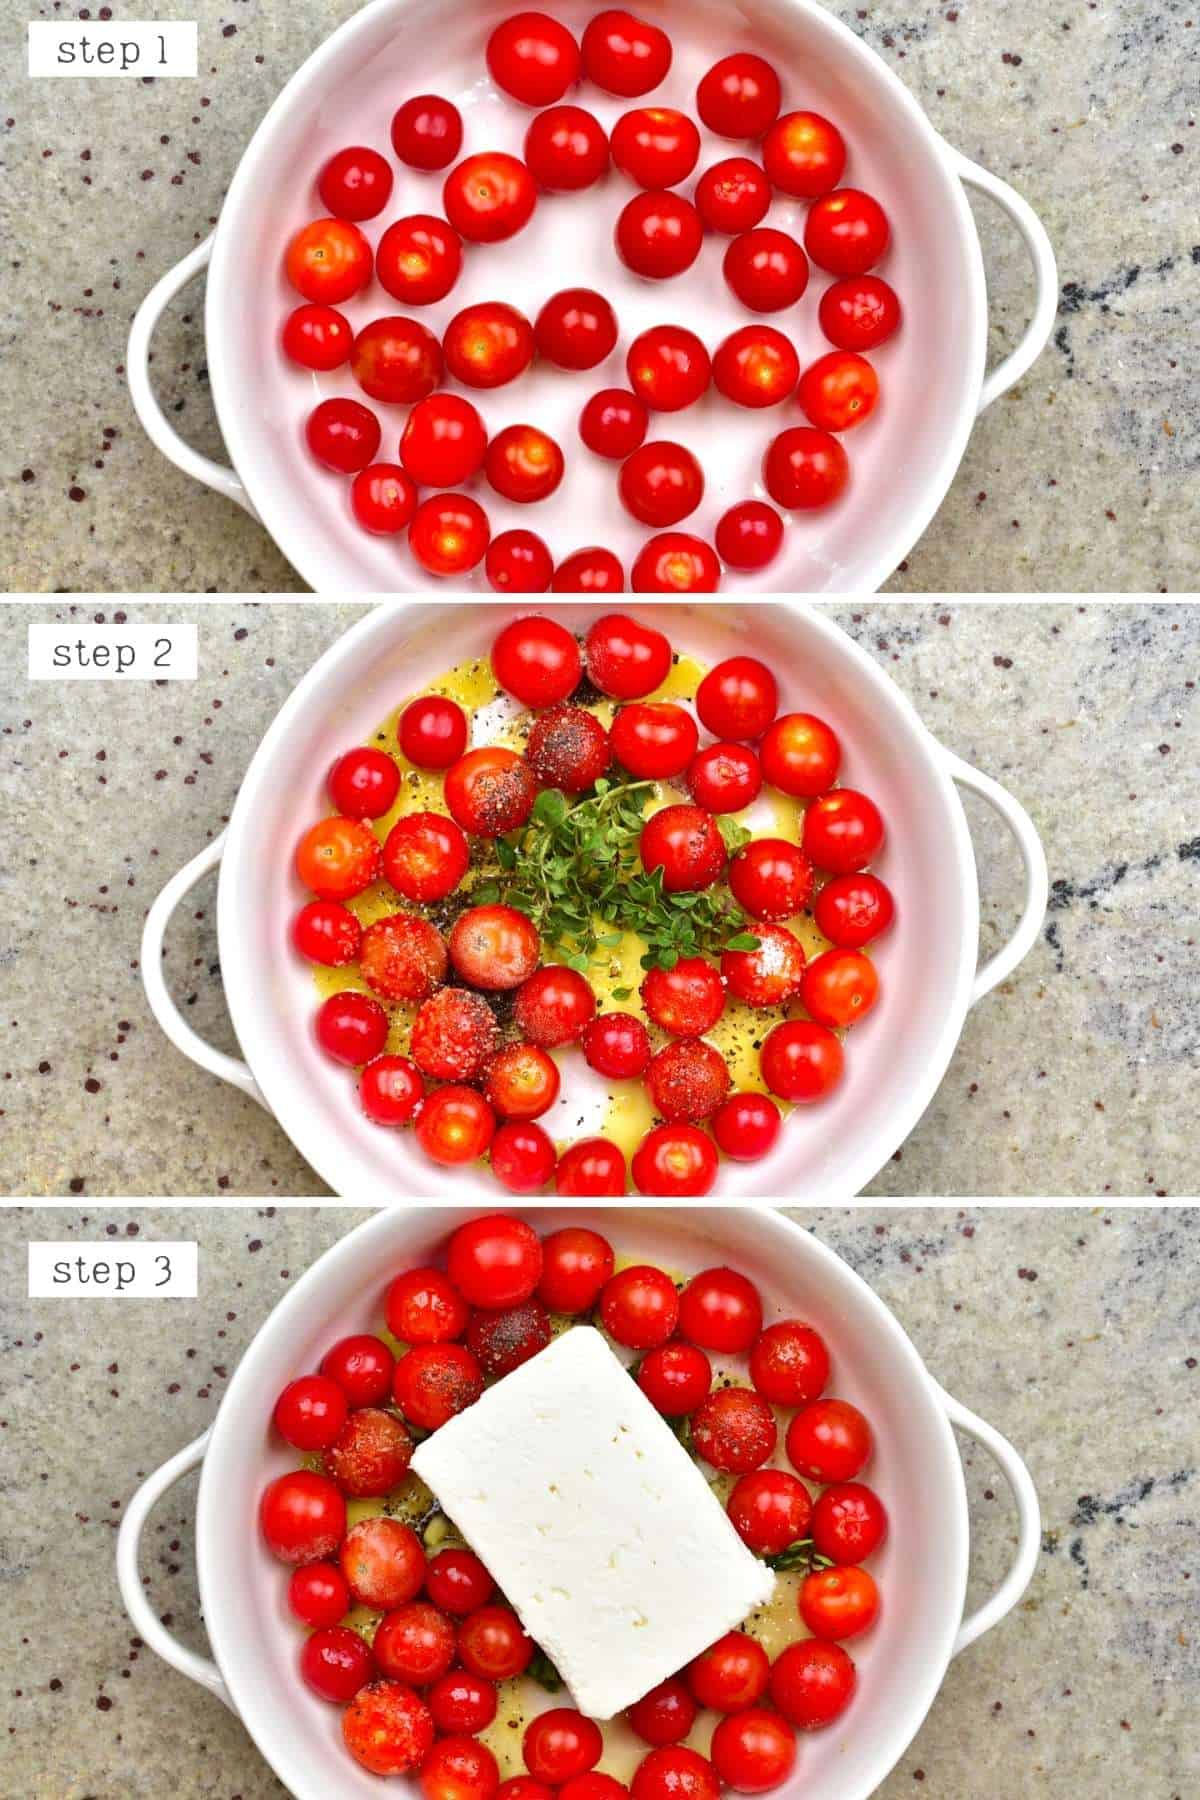 Steps for making tomato feta pasta